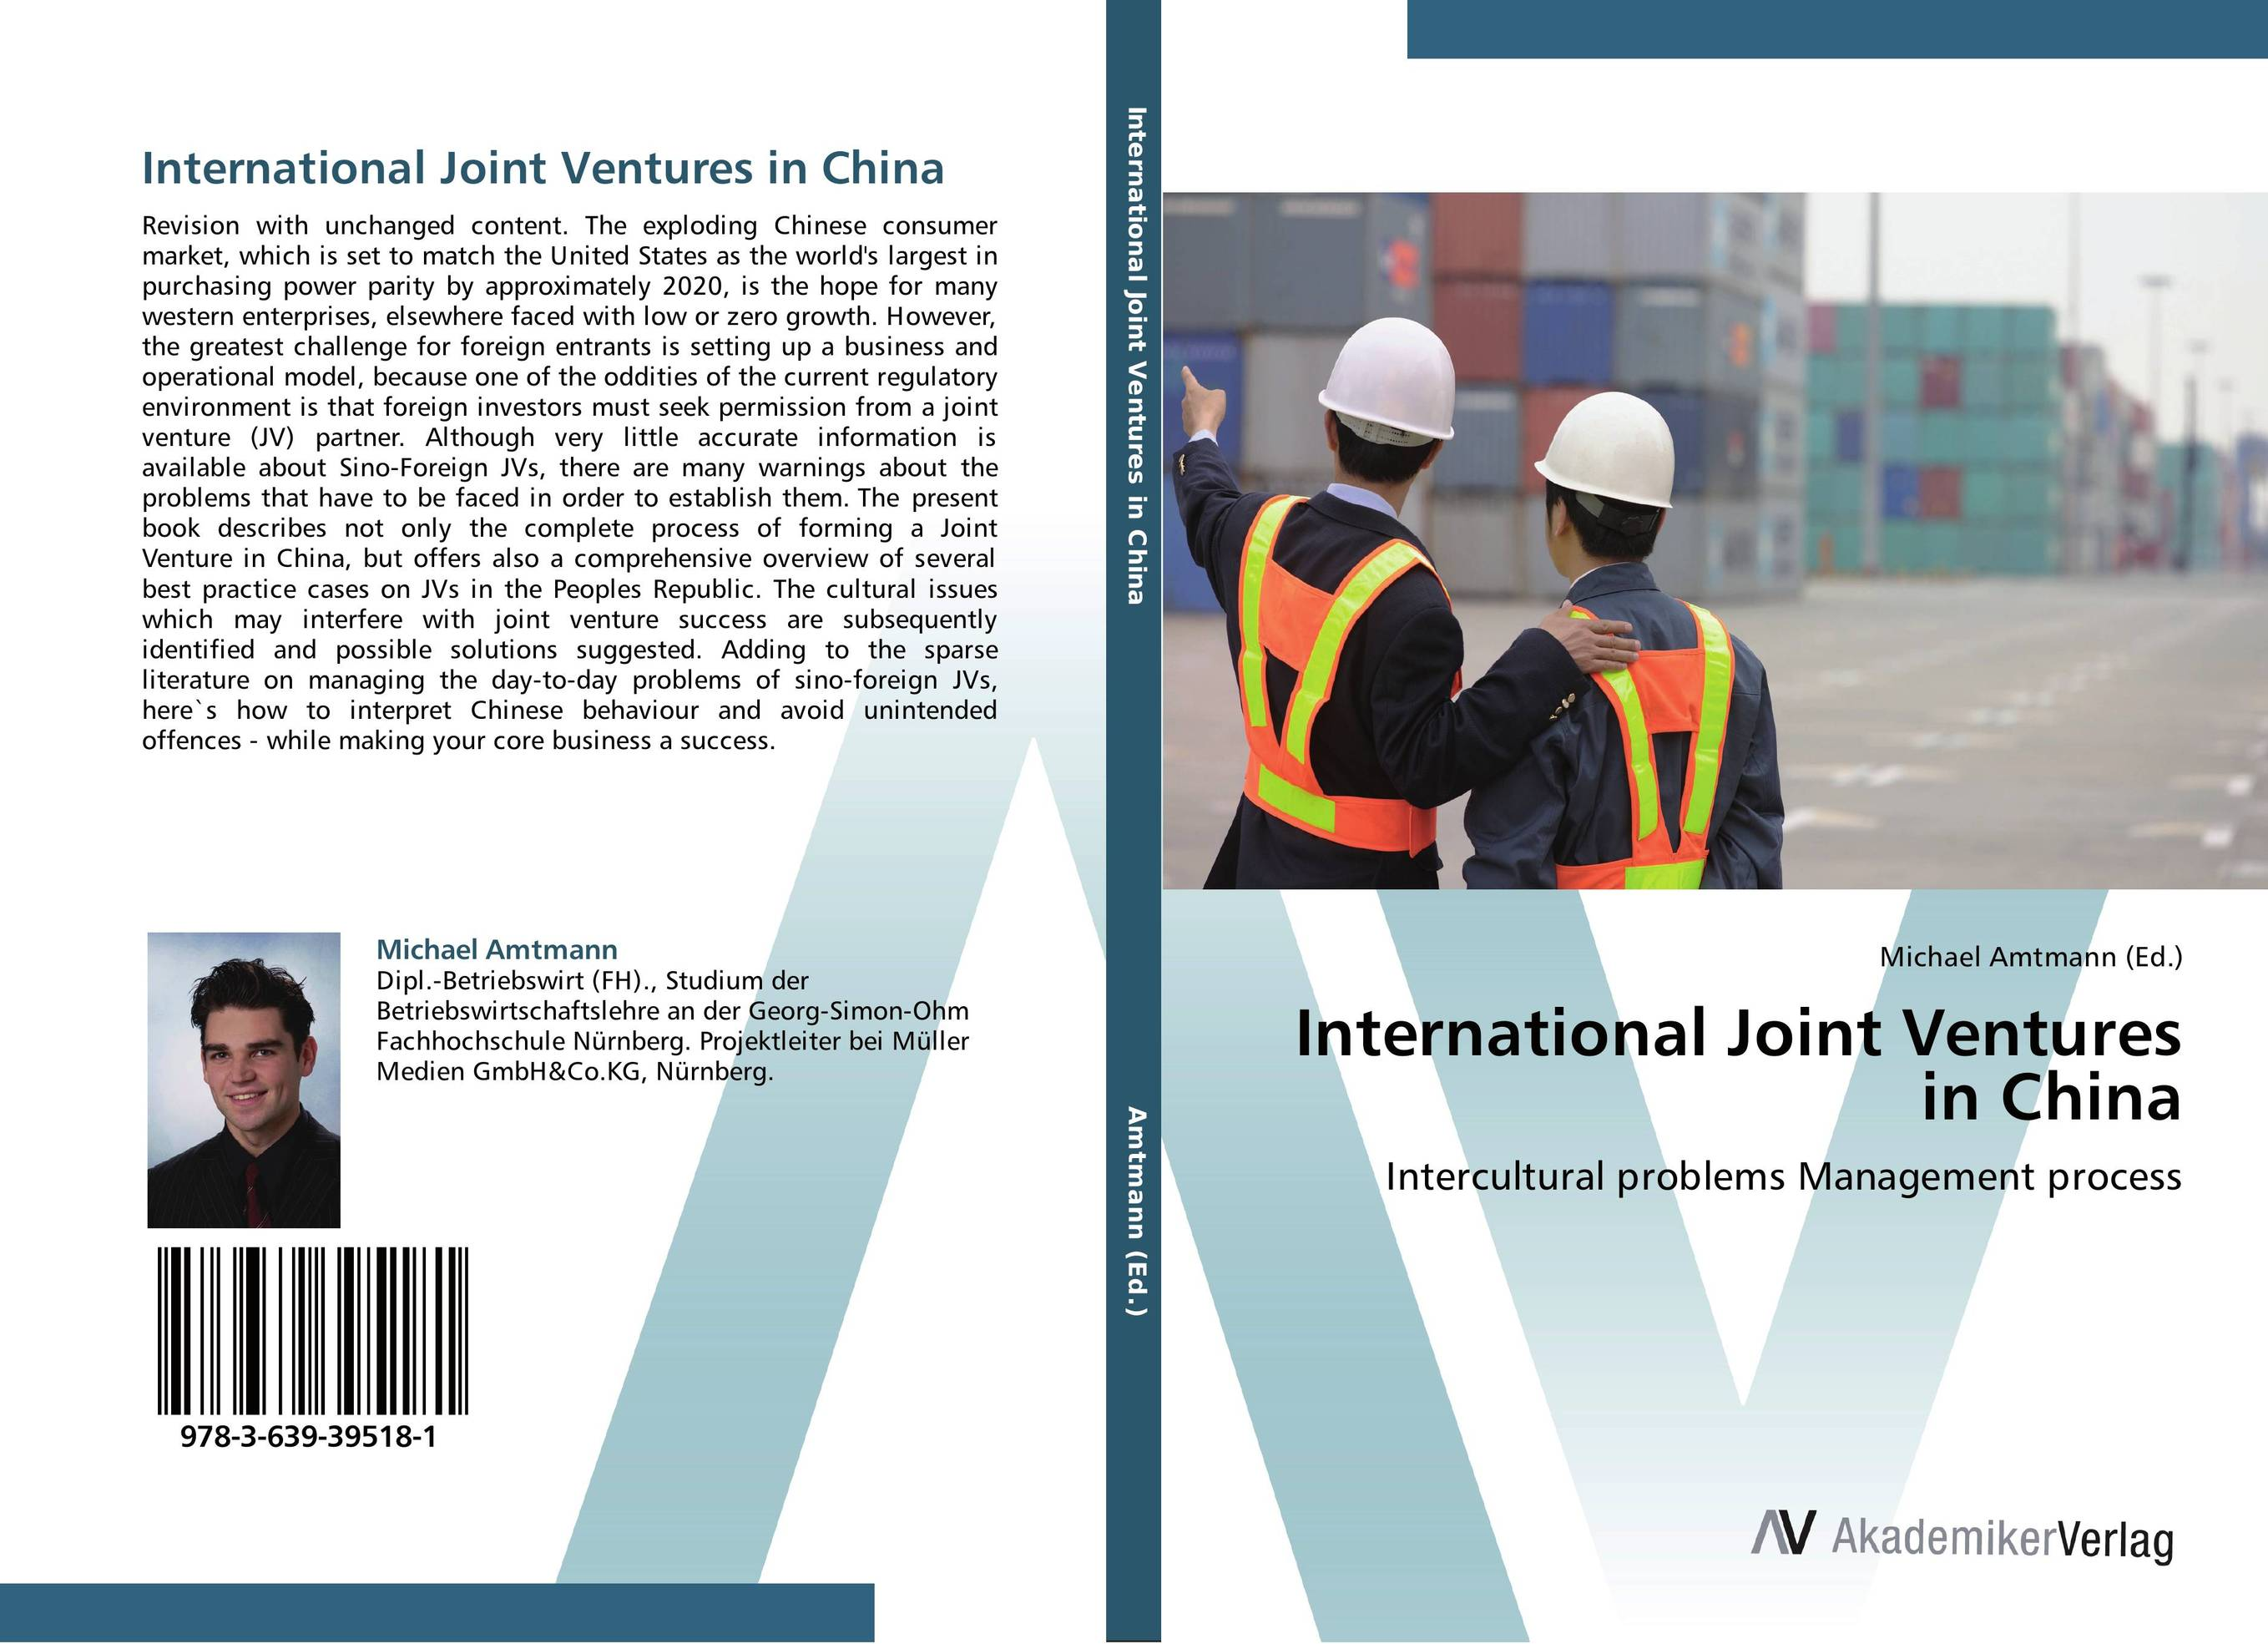 International Joint Ventures in China marc lane j the mission driven venture business solutions to the world s most vexing social problems